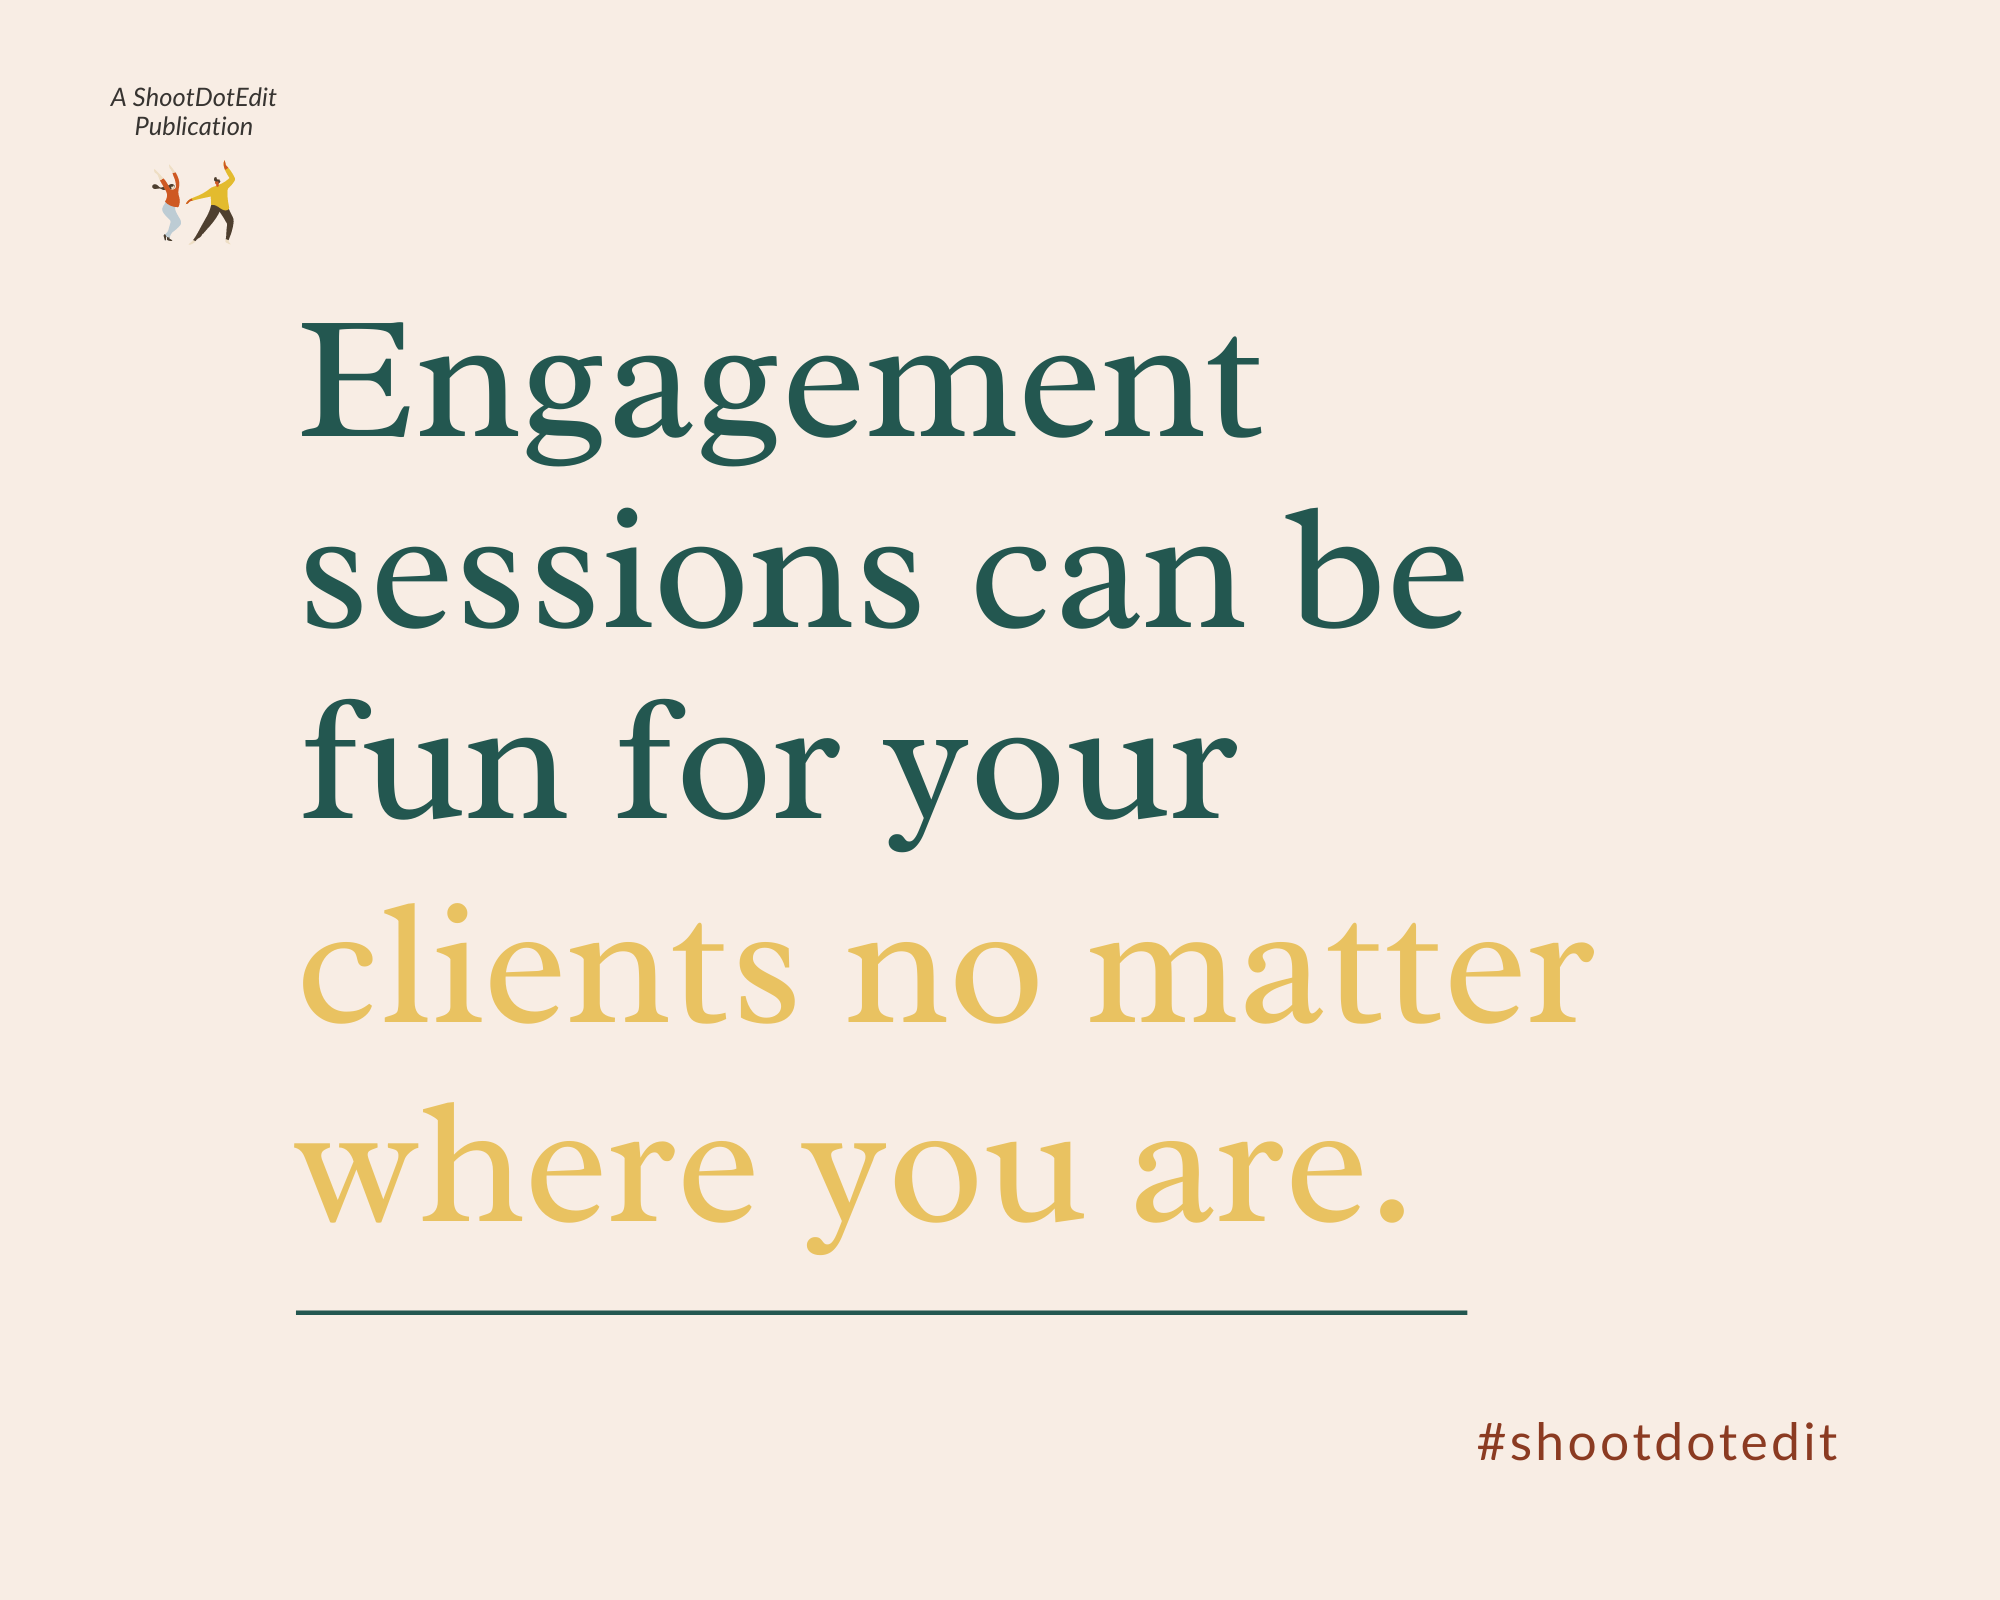 Infographic stating engagement sessions can be fun for your clients no matter where you are